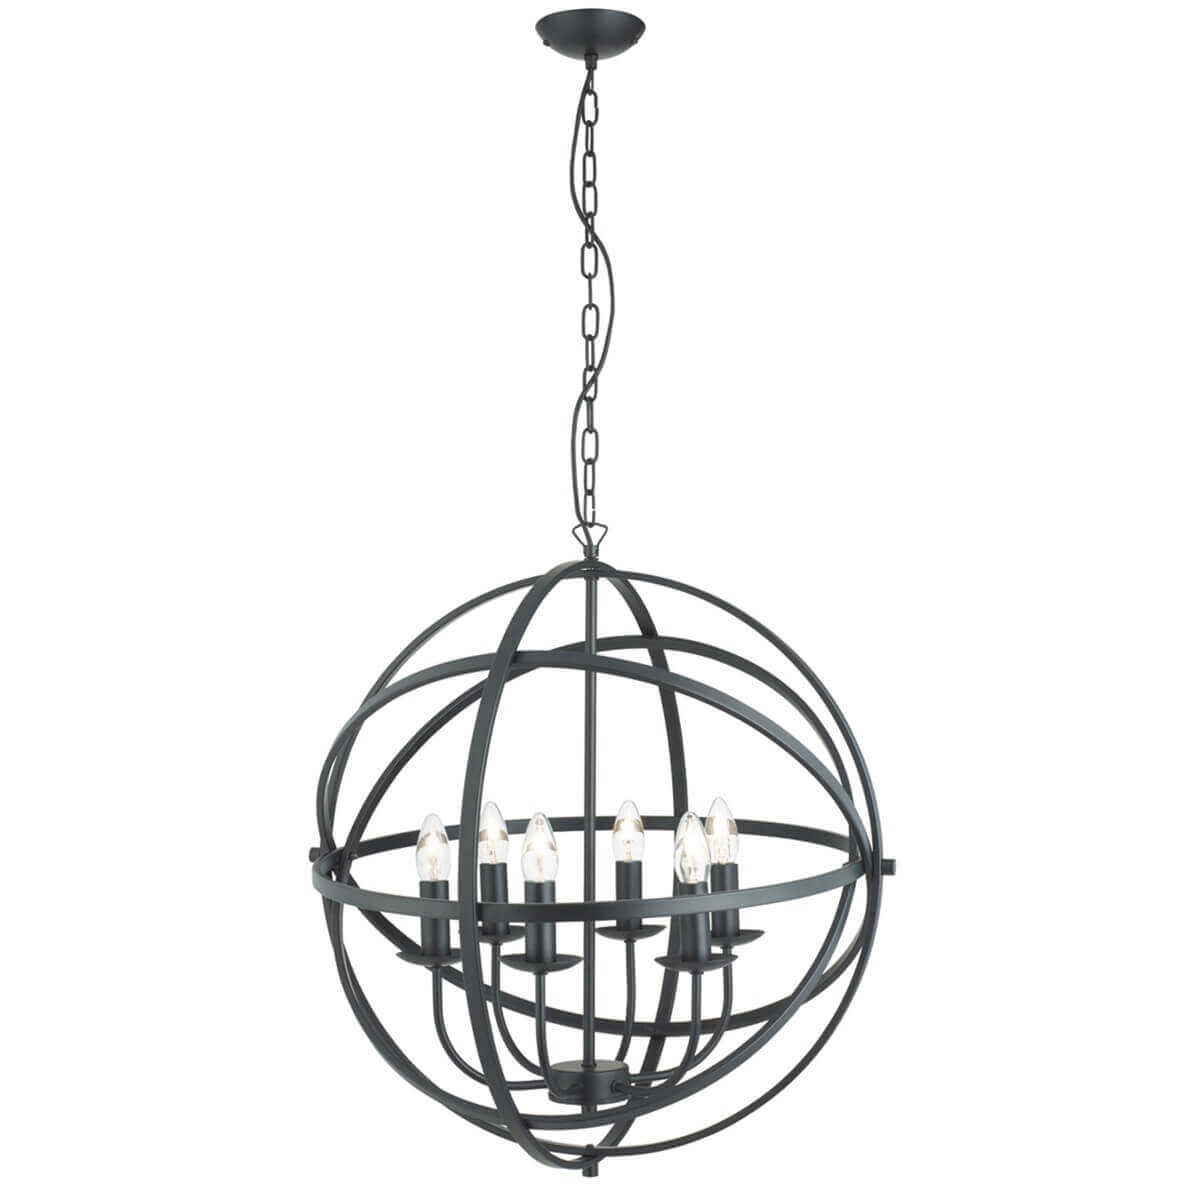 Orbit 6 Light Cage Frame Orb Pendant Matt Black